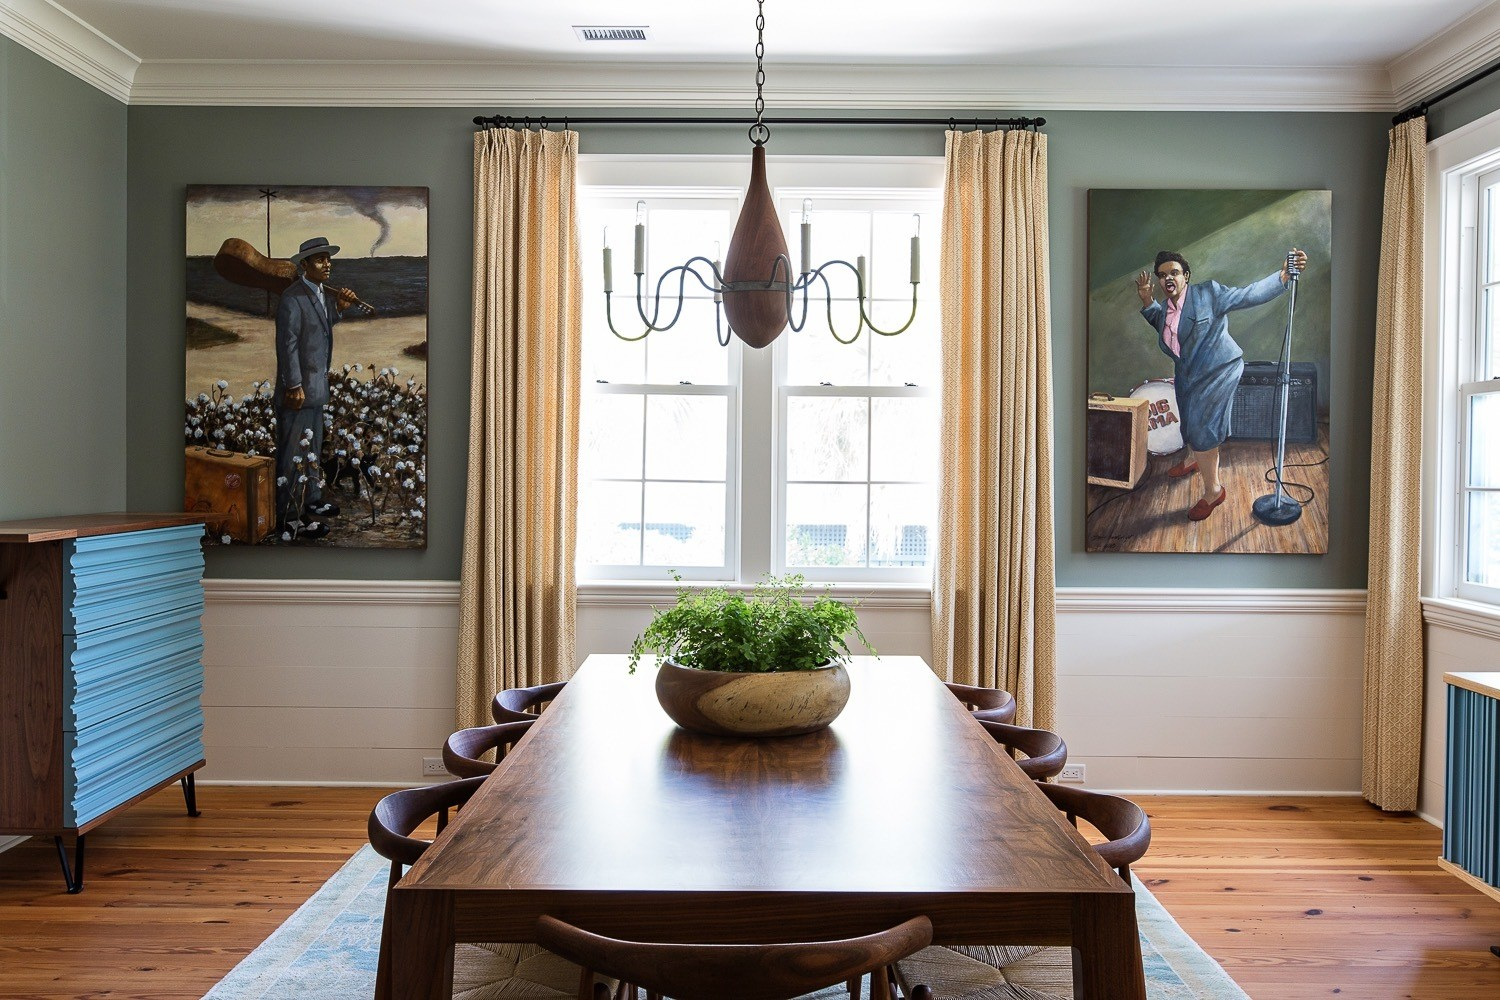 The dining room is another space in the home that combines a mix of artwork that the homeowners have collected throughout the years, custom furnishings, and vintage accessories that help give this room a story of its own. Both paintings are by local Charleston artist David Boatwright and the curtains are by Katie Leede.